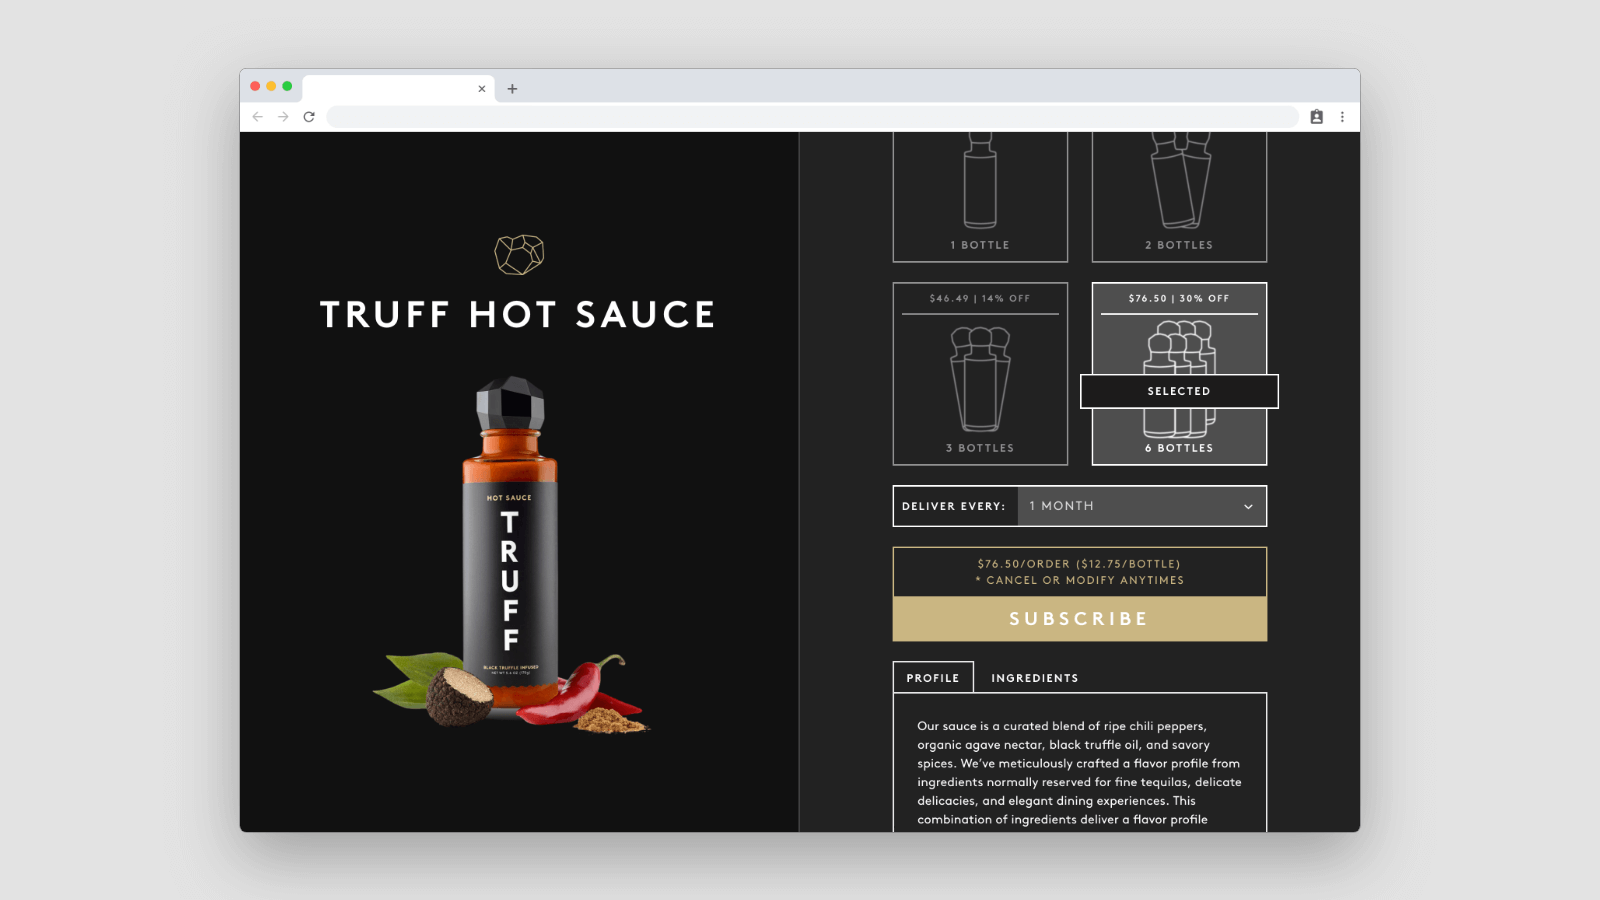 Subscription page for Truff Hot Sauce